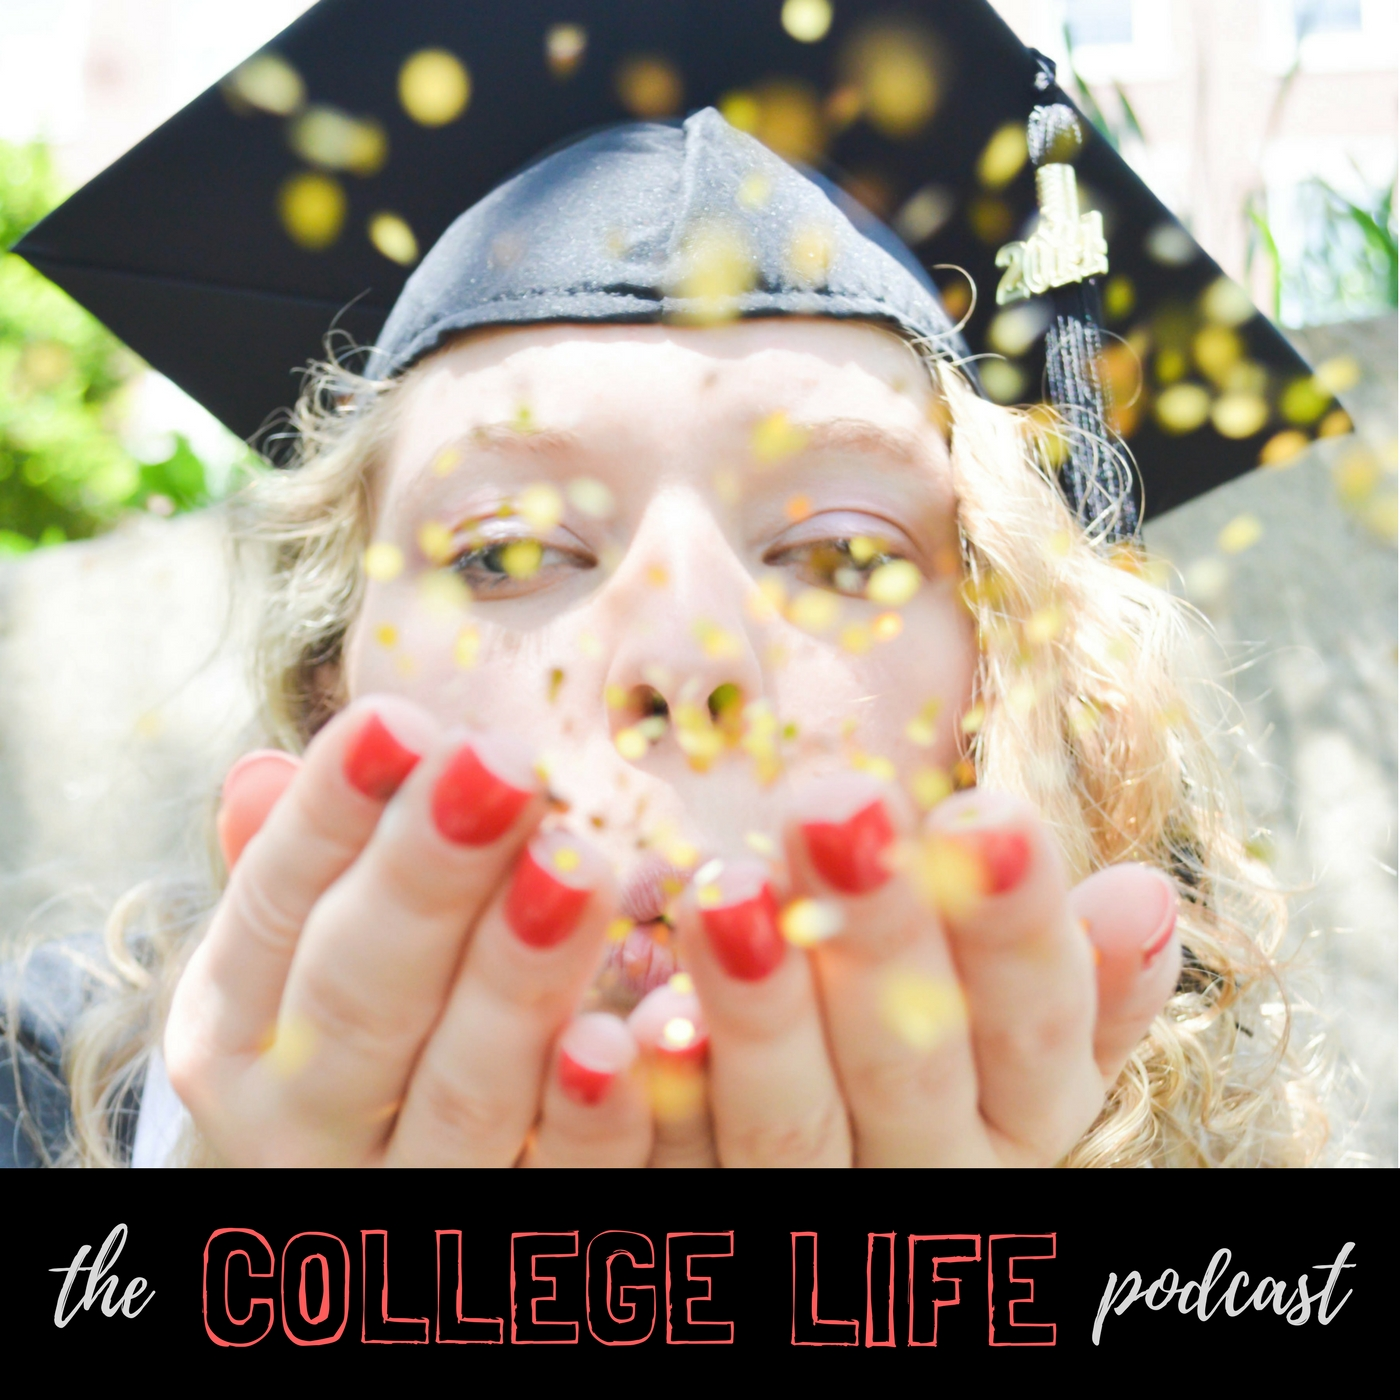 College Life Podcast.jpg